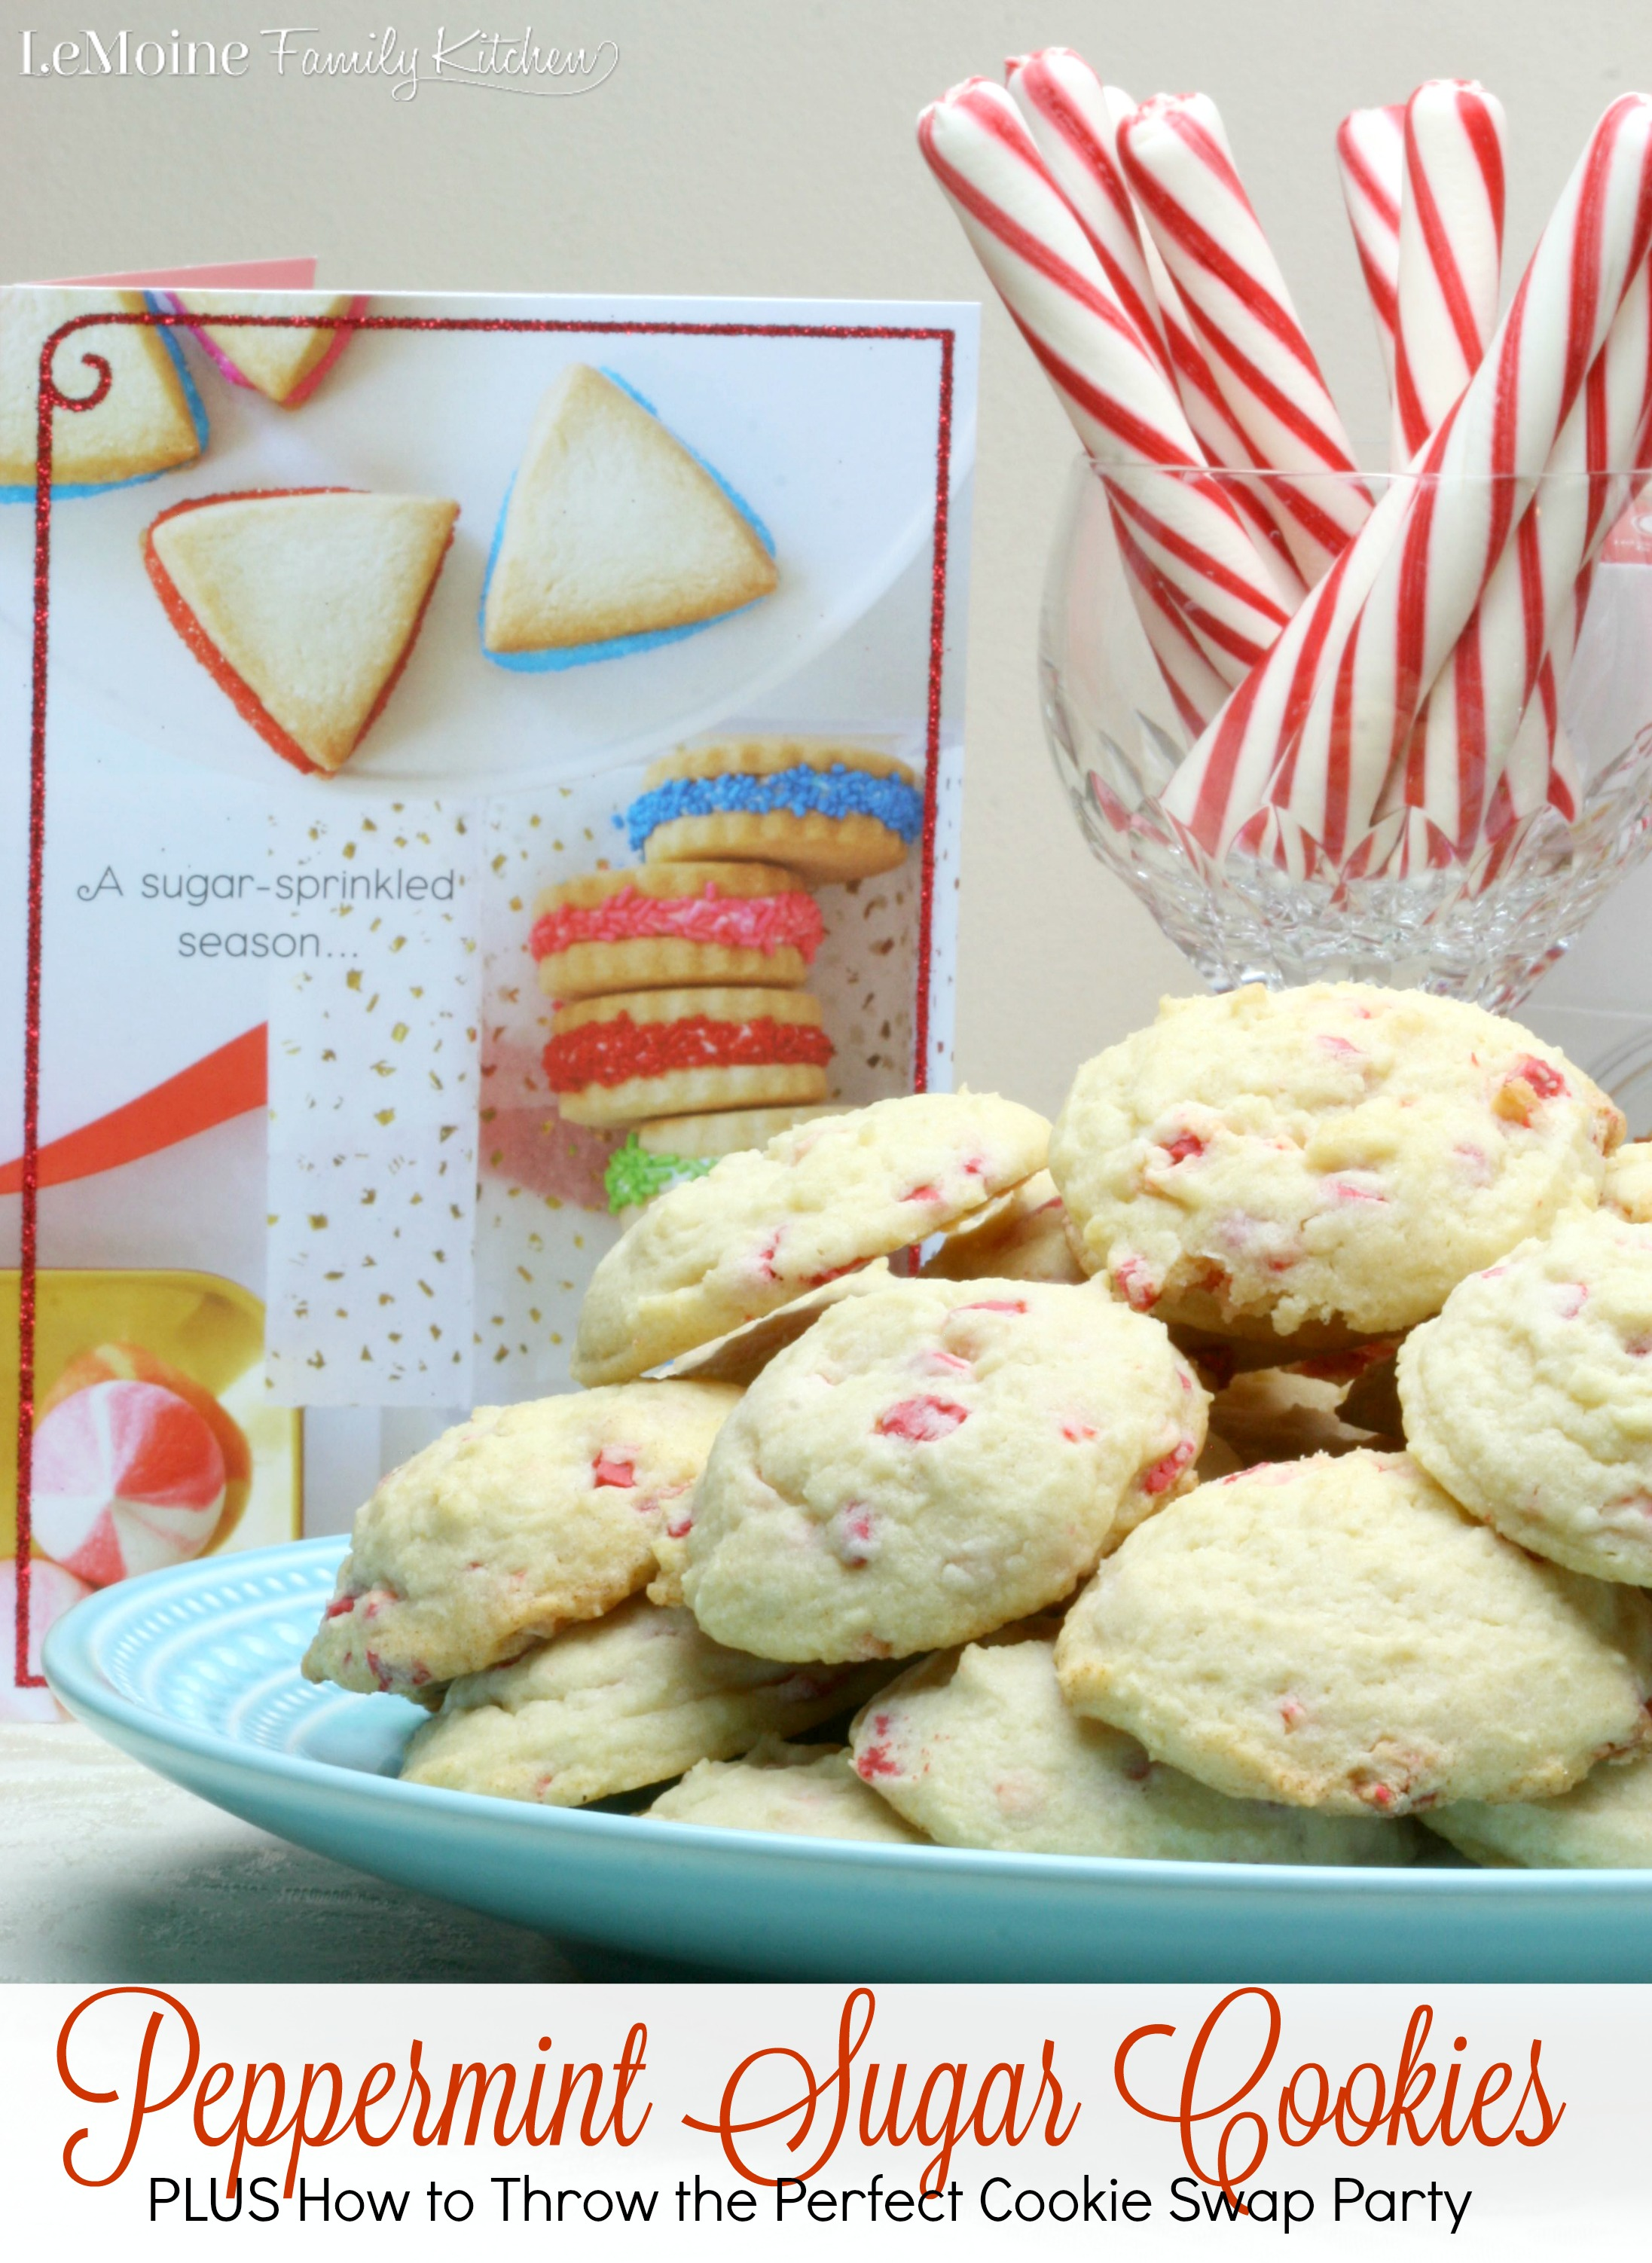 Peppermint Sugar Cookies PLUS How to Throw the Perfect Cookie Swap Party